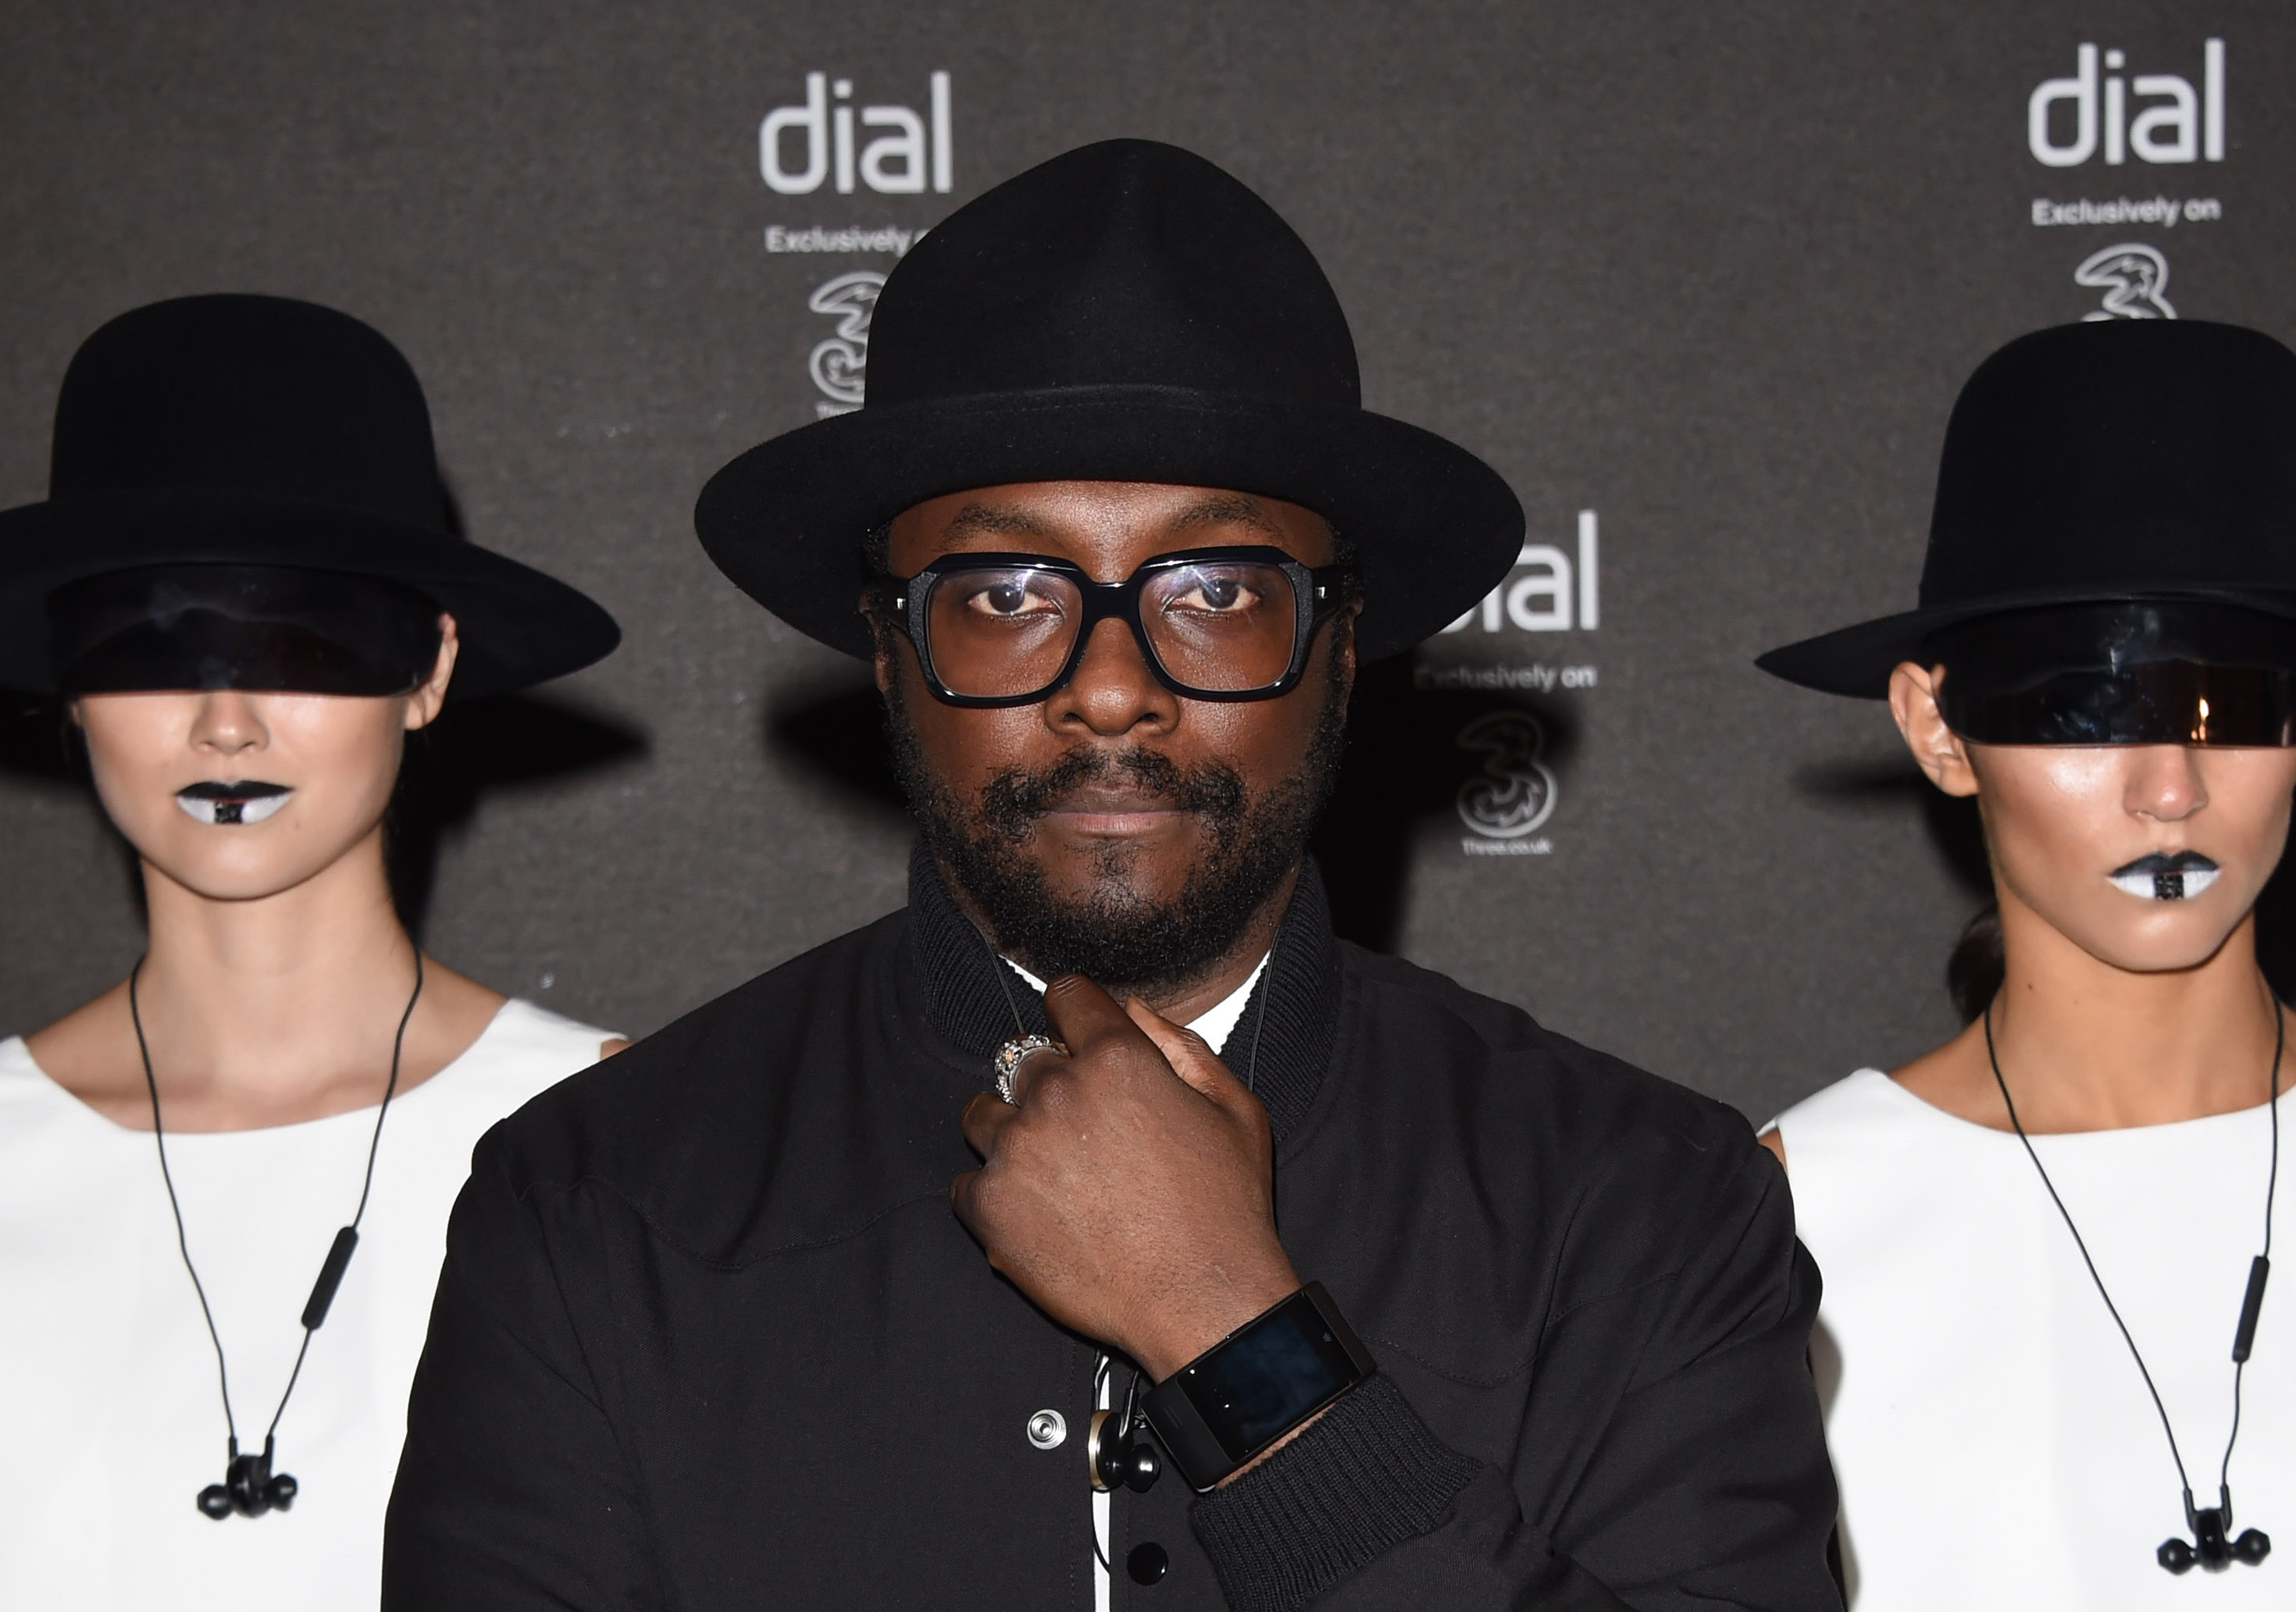 The launch of Will.i.am's new smartwatch was rid.ic.ulous